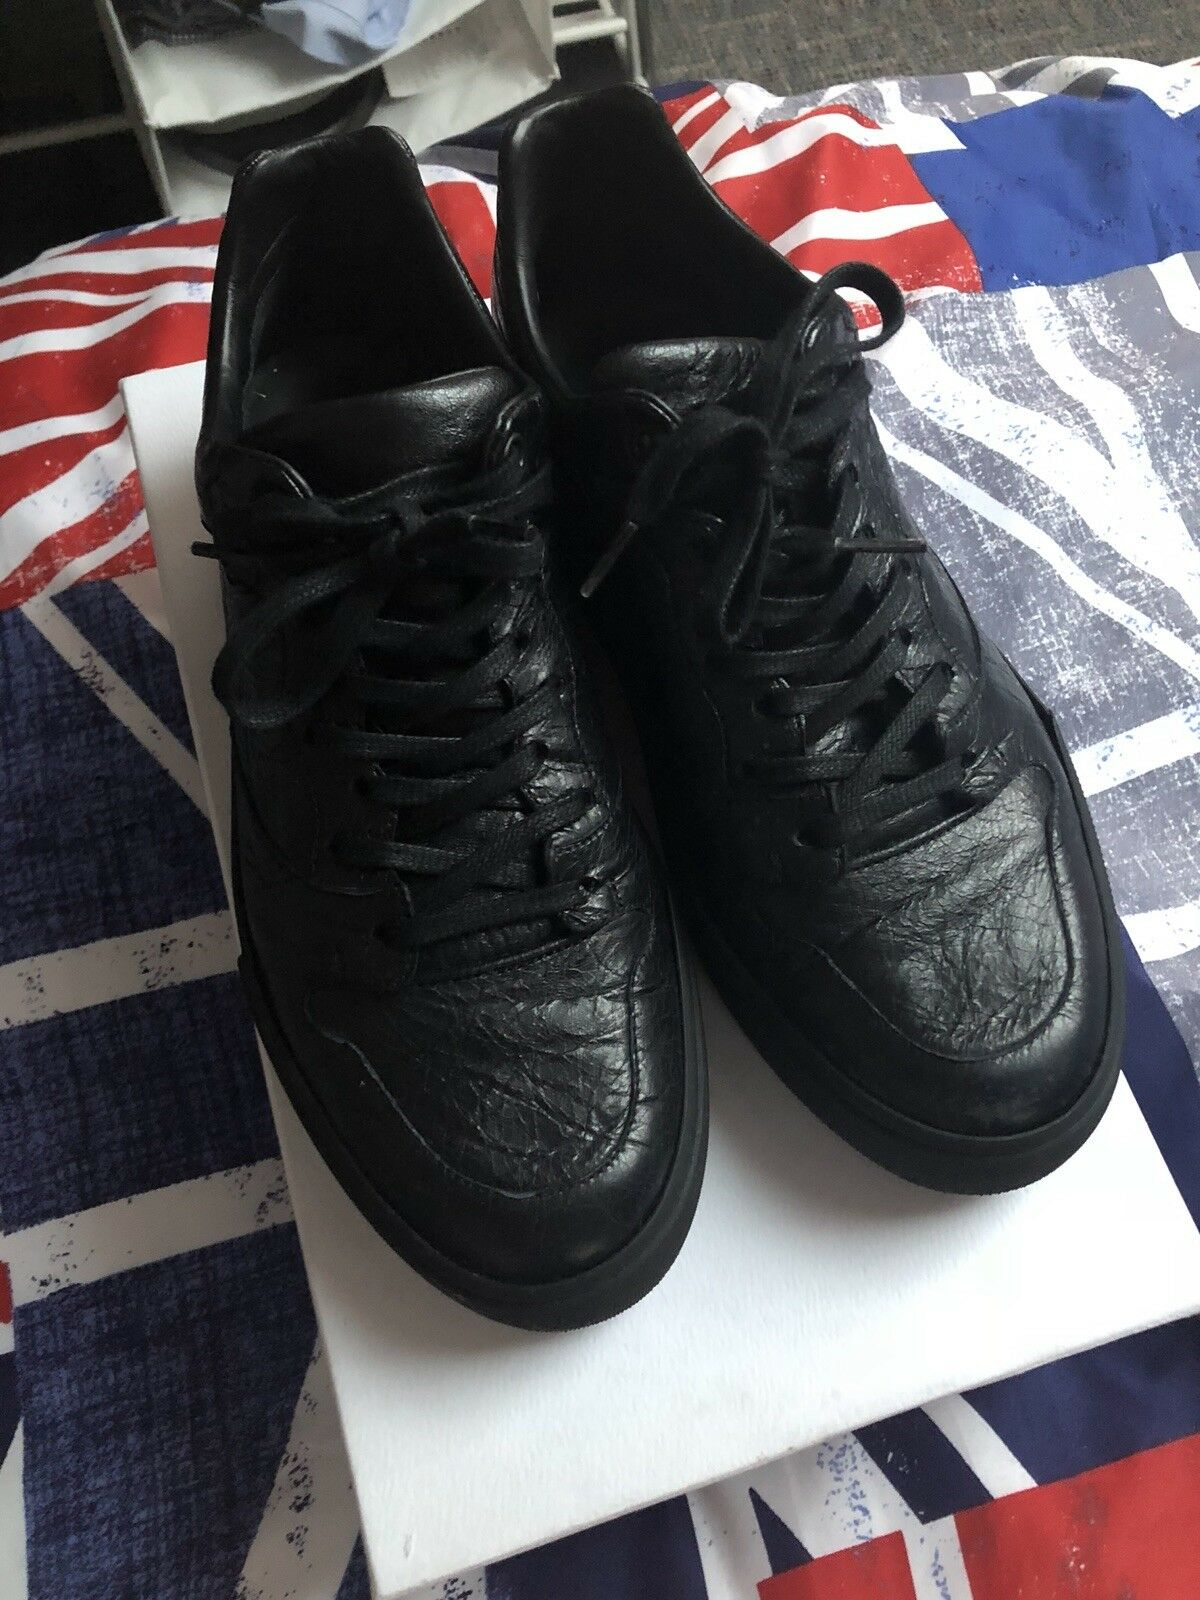 Balenciaga Baskets Taille 39 (fit comme une taille 7)